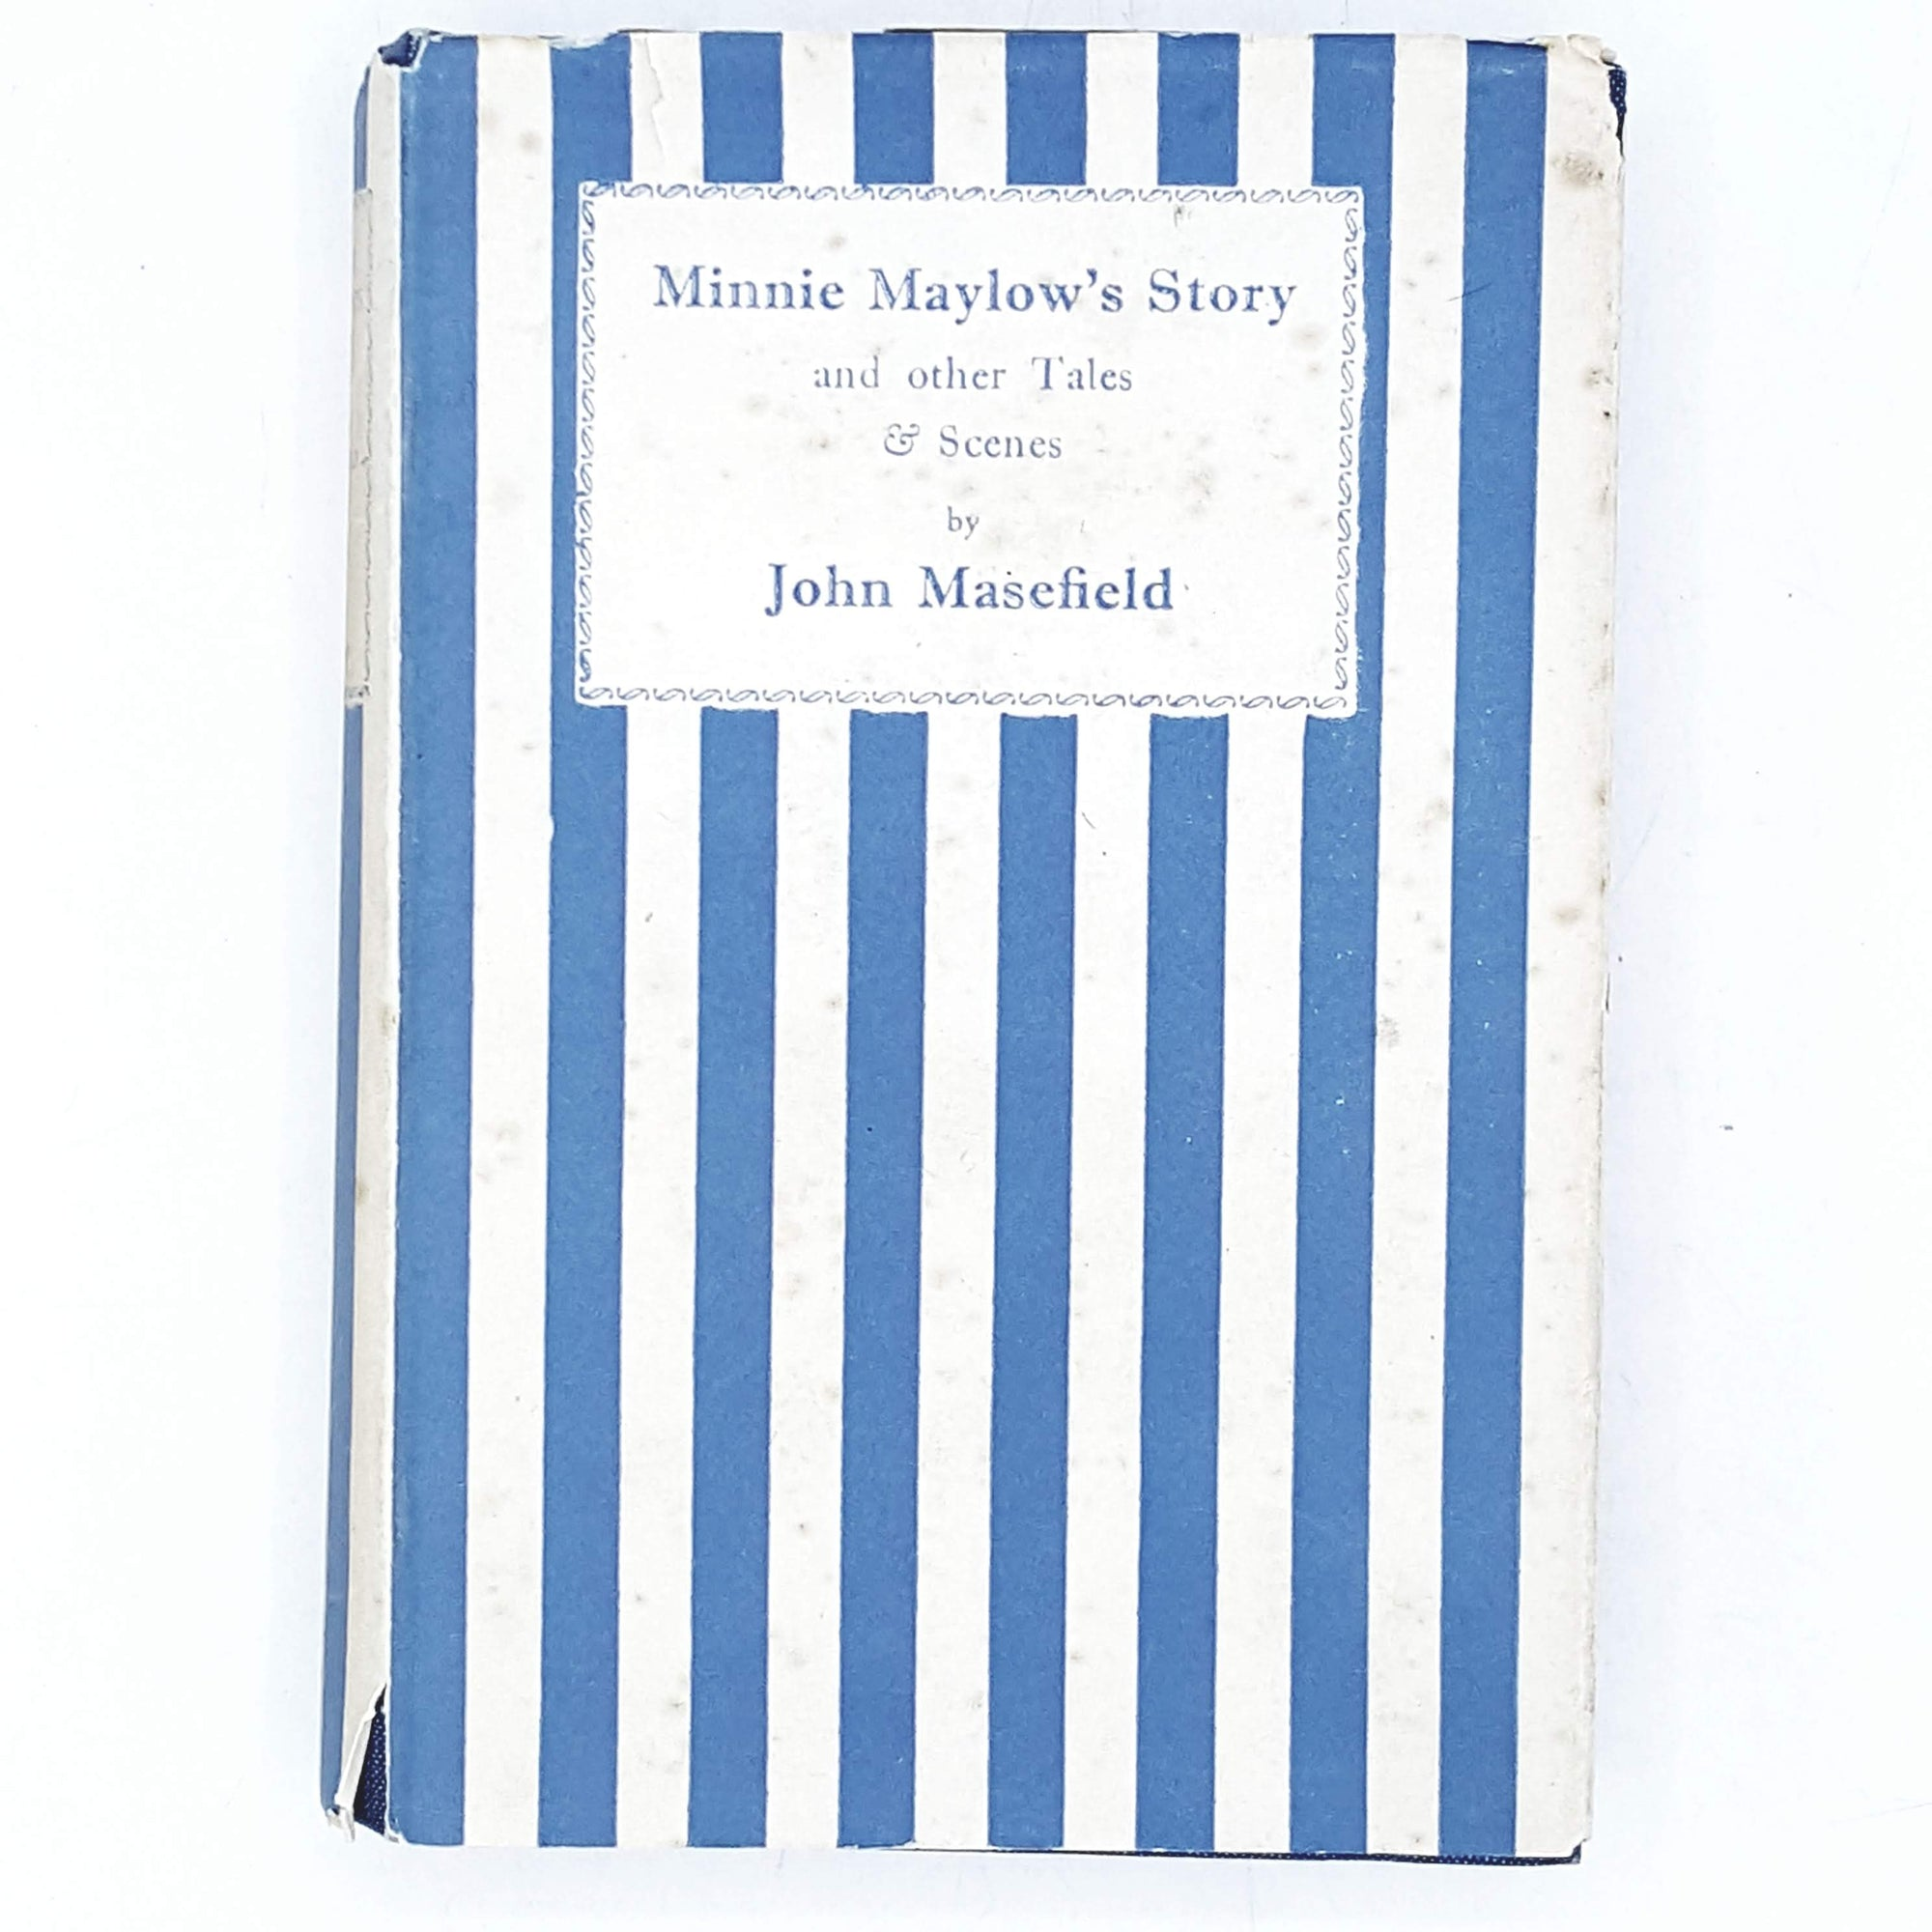 First Edition Minnie Maylow's Story and other Tales & Scenes by John Masefield 1931